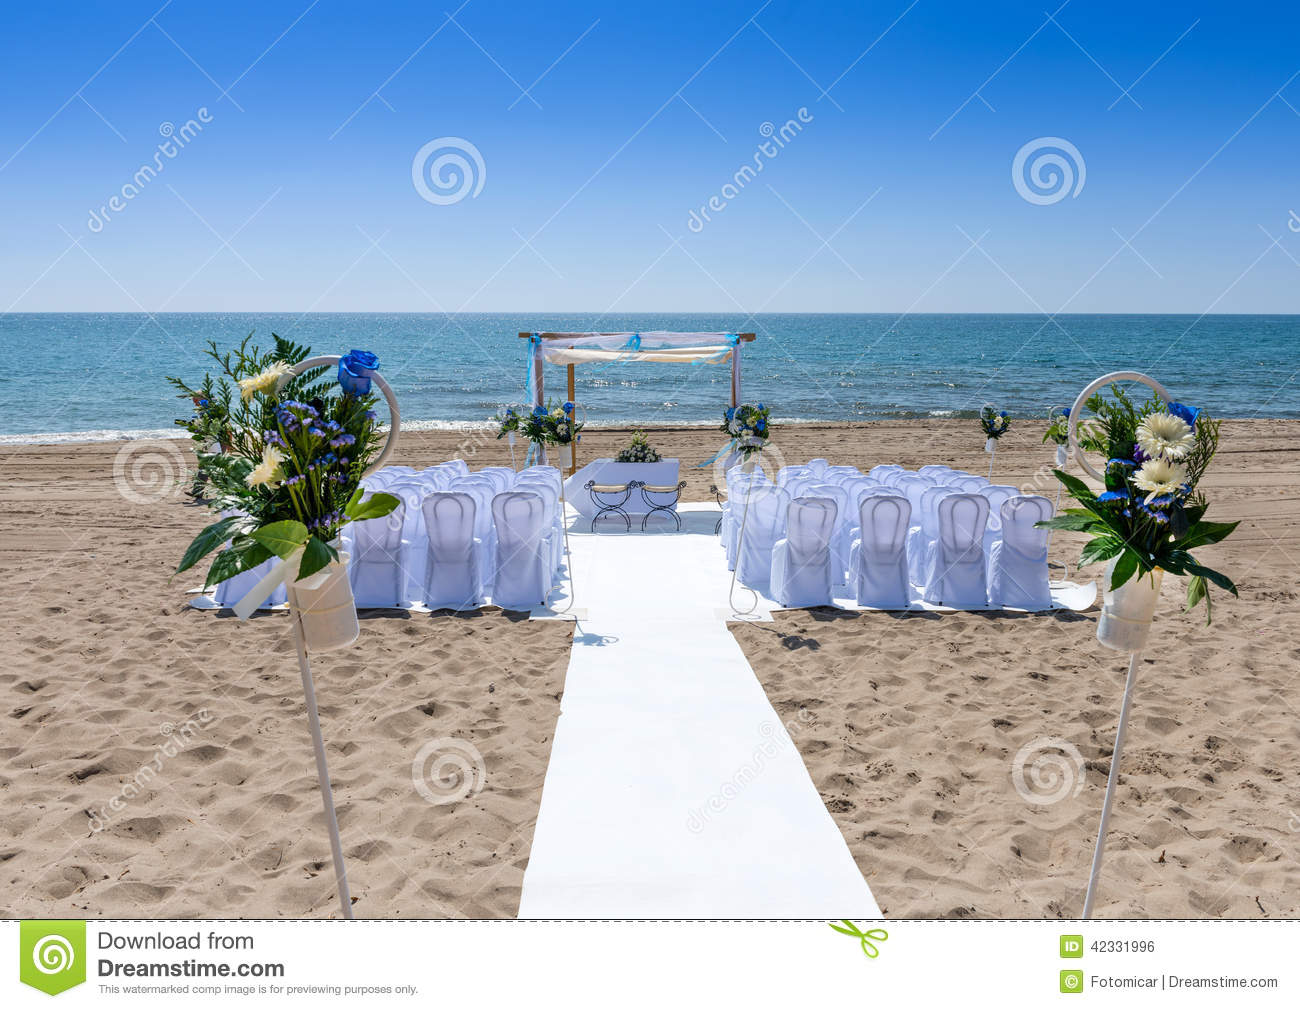 c r monie de mariage sur la plage. Black Bedroom Furniture Sets. Home Design Ideas